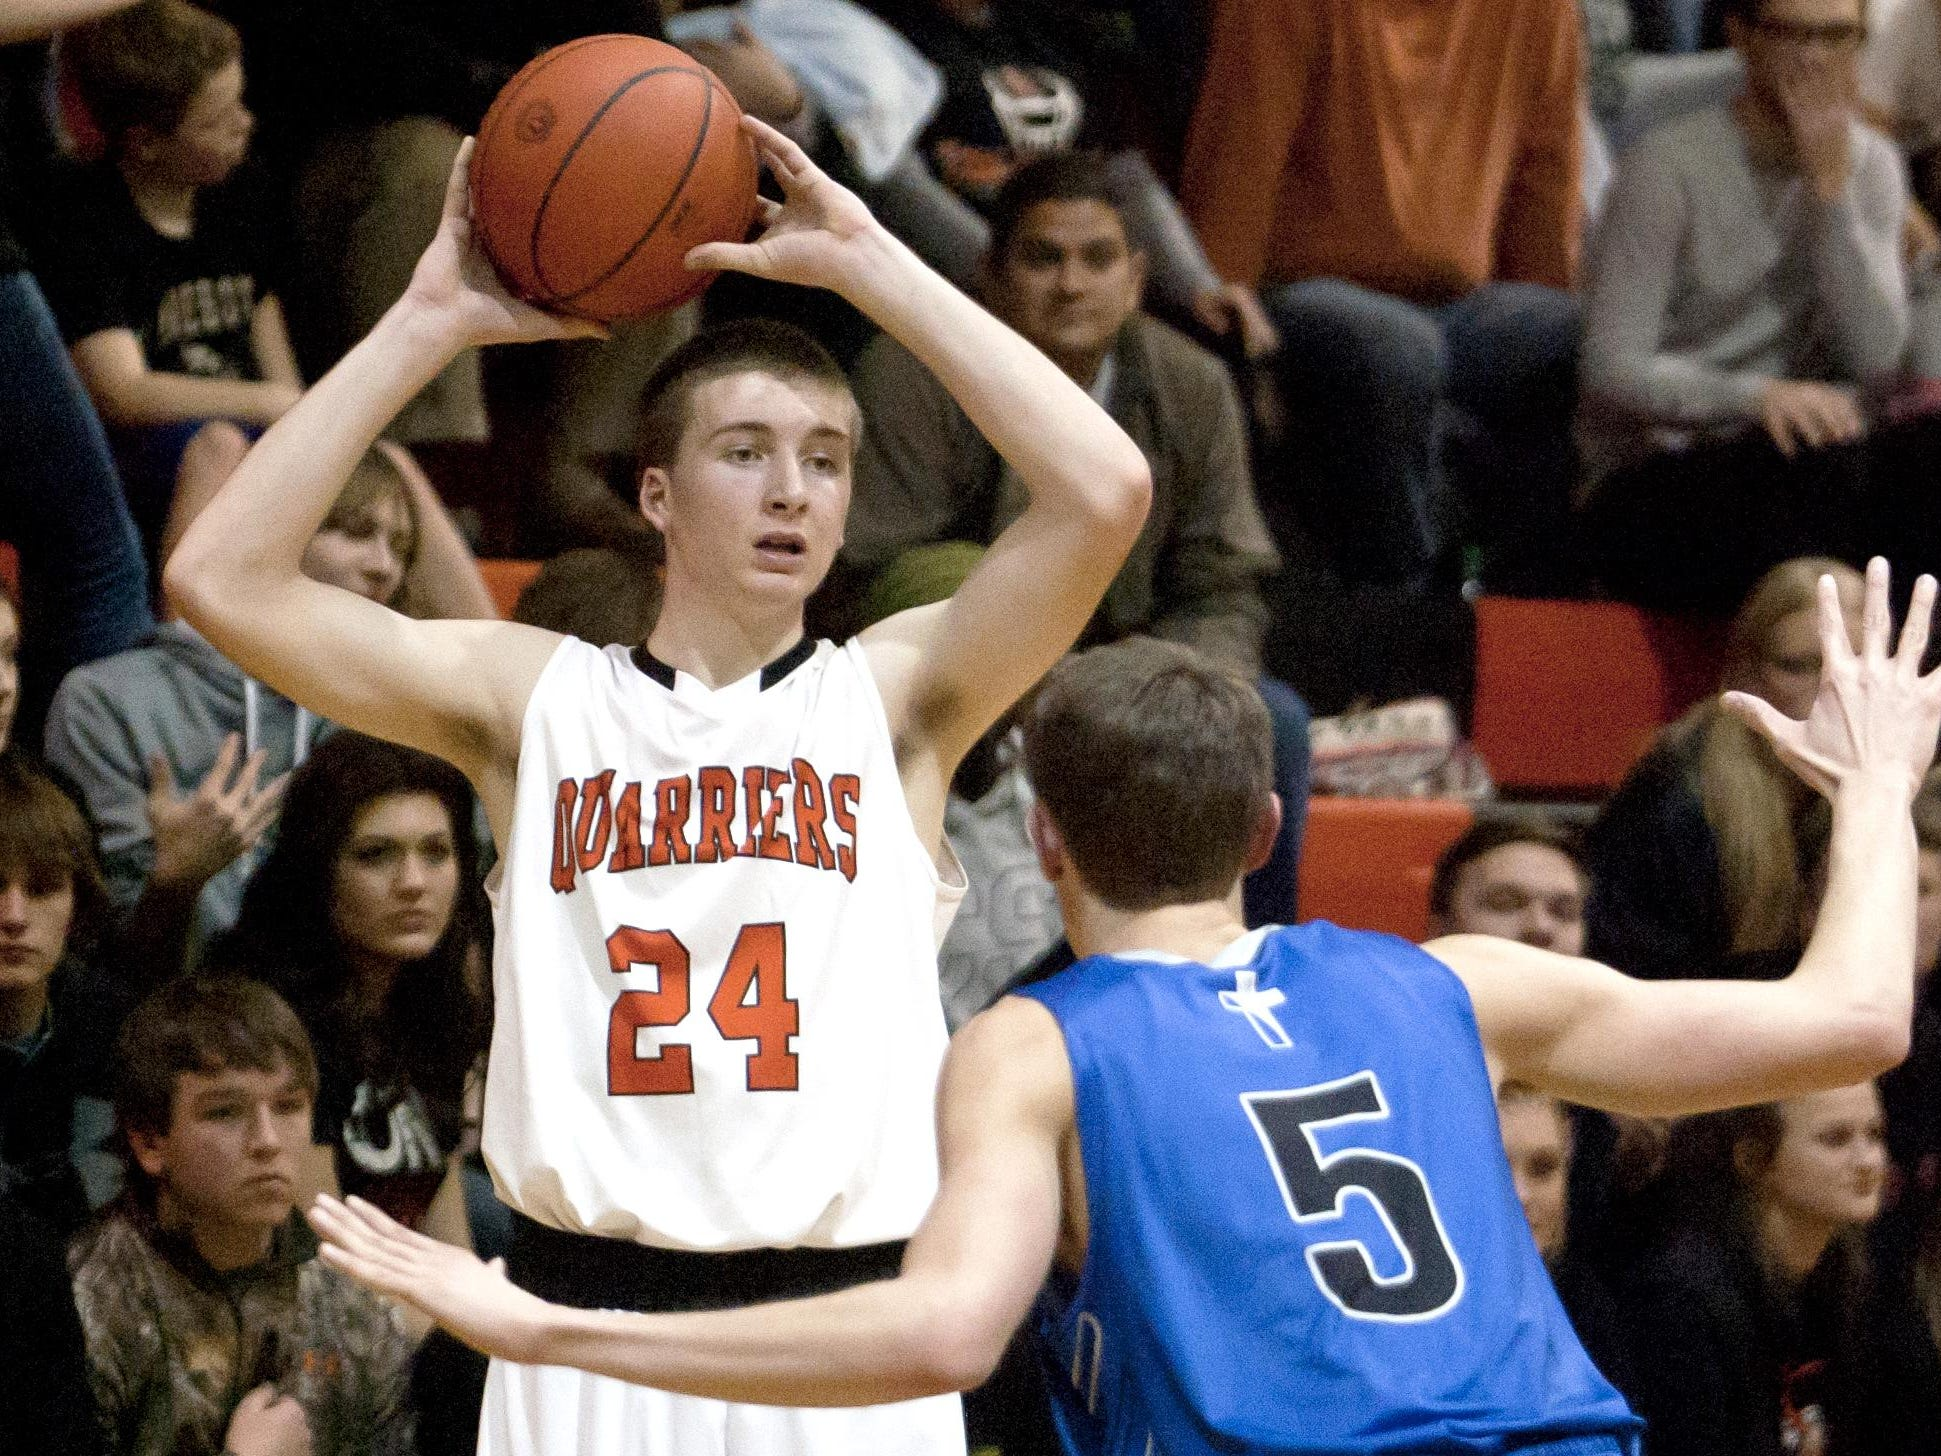 Ty Hoglund of Dell Rapids was a First Team Dakota 12 All-Conference selection and the conference's Player of the Year.